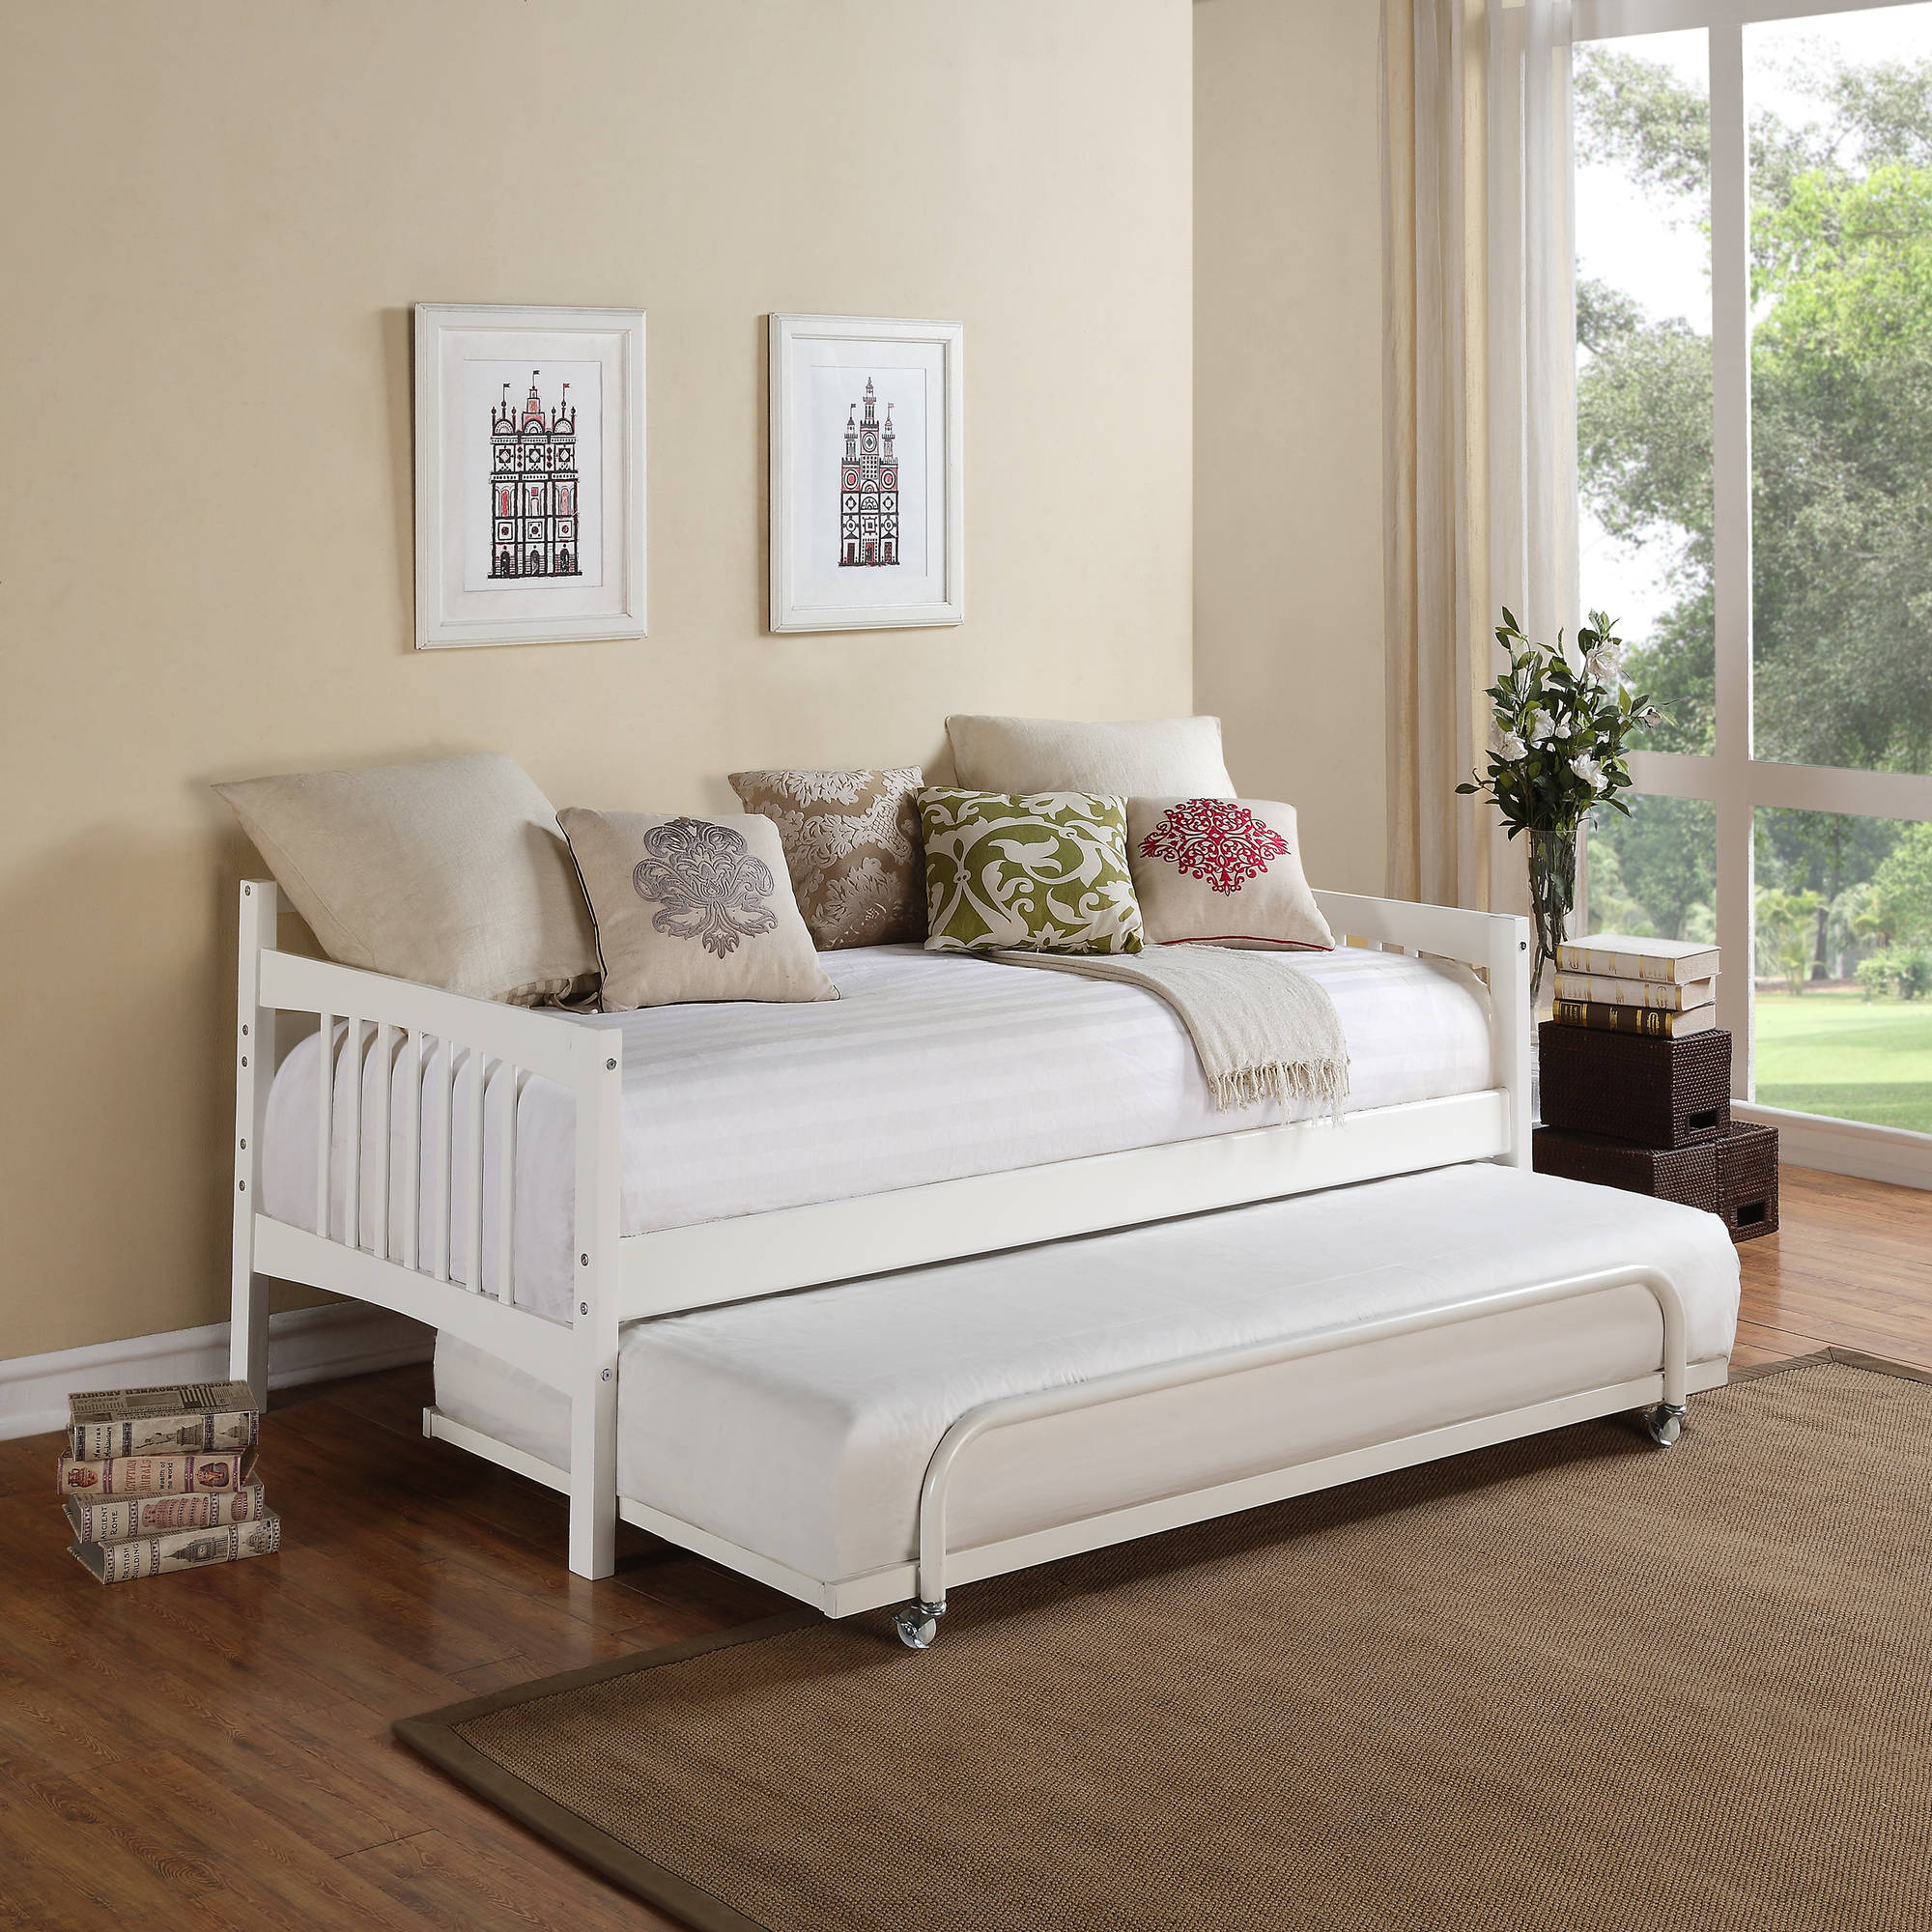 Jysk Dagbdd White Double Bed Frame And King Size Bed Frame From Jysk Jysk Santos Patio Swing